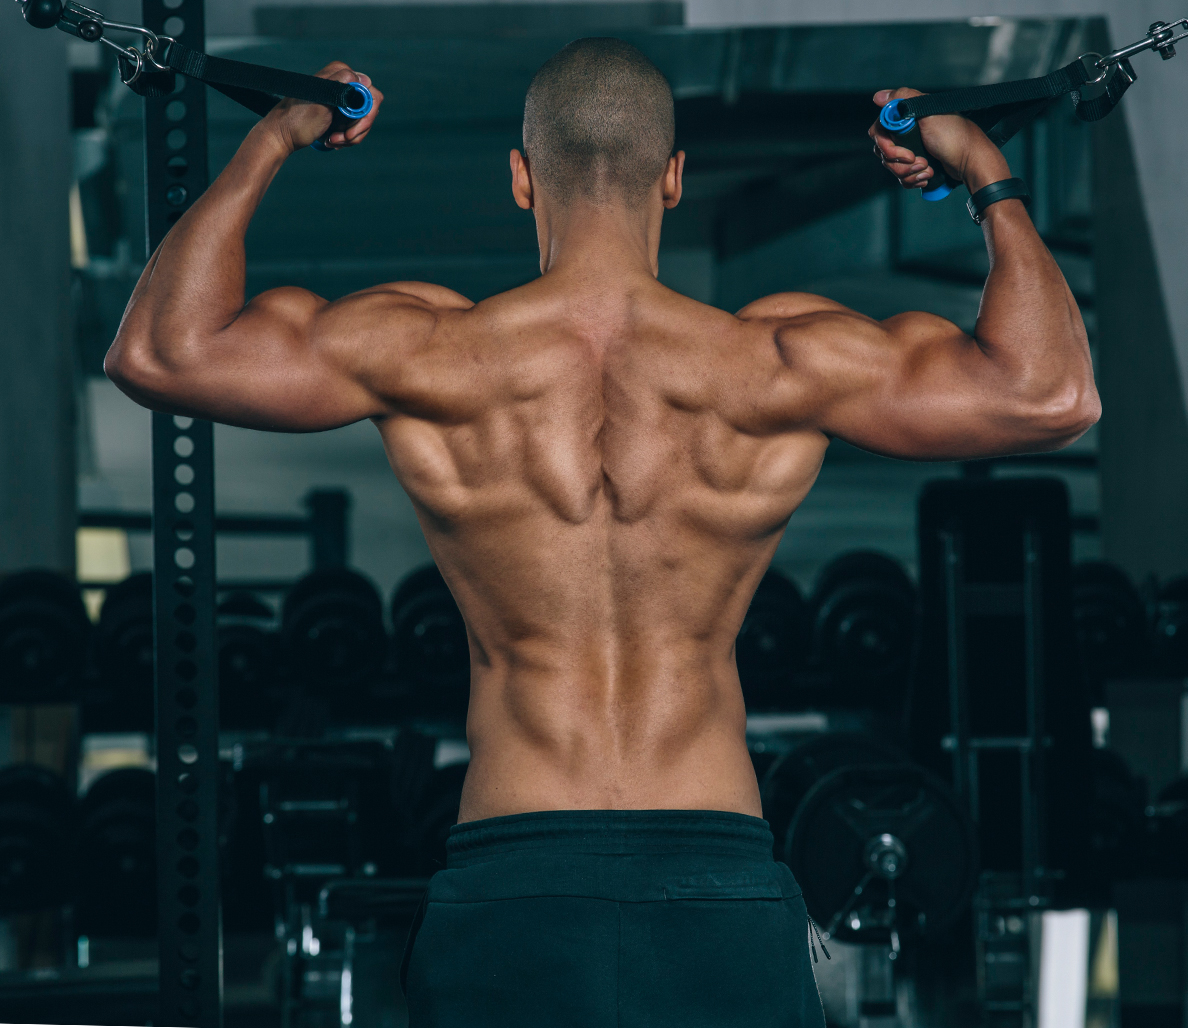 836f4611 How to Increase Your Muscle Definition